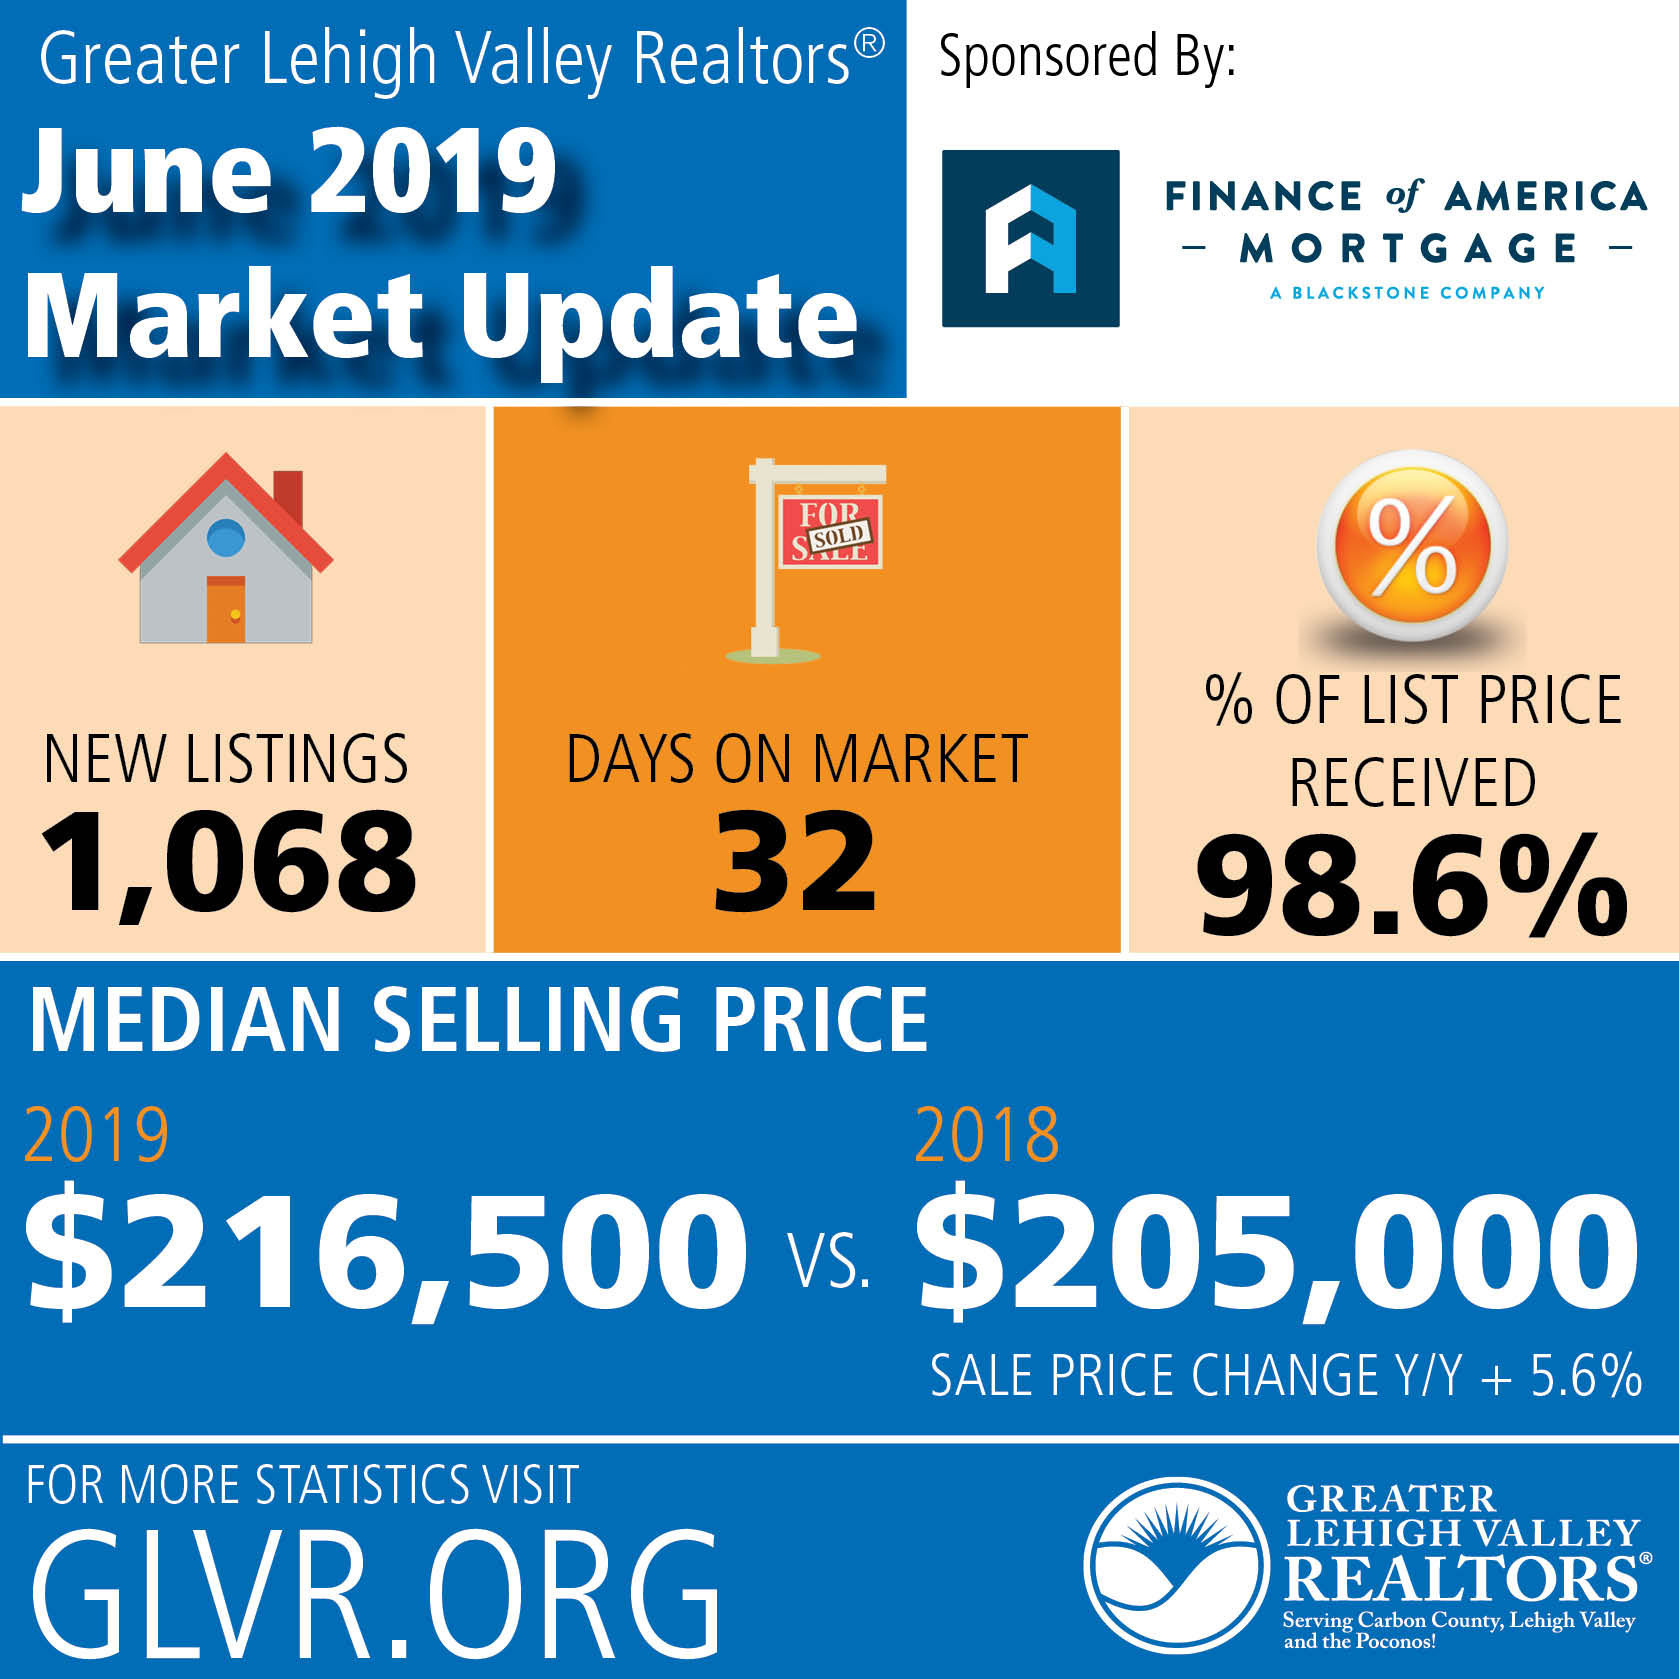 Summer Housing Market Continues Trend of Low Inventory, Higher Prices